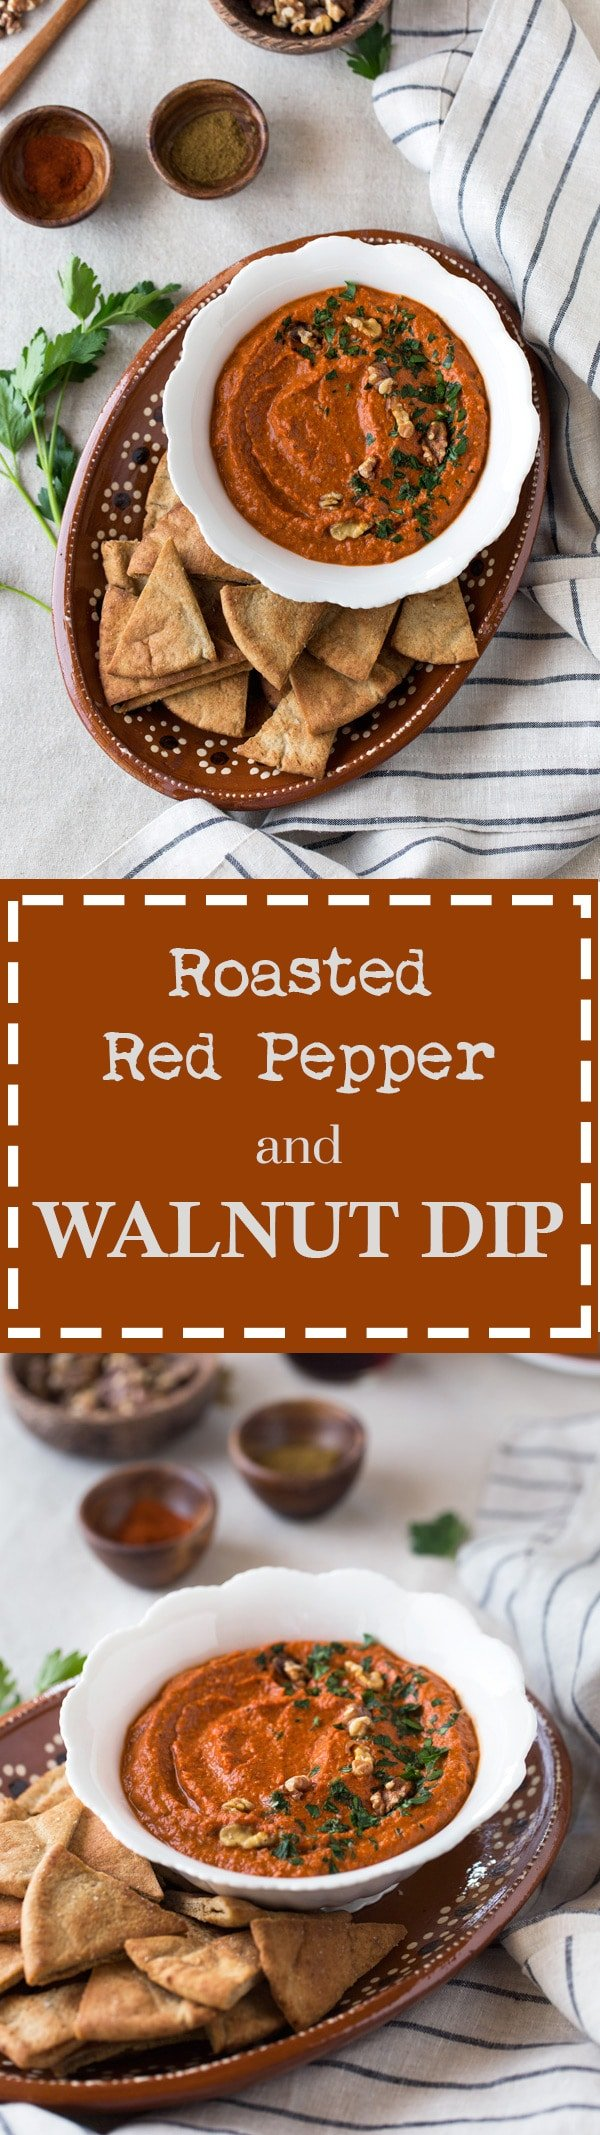 Roasted Red Pepper and Walnut Dip {Vegan}